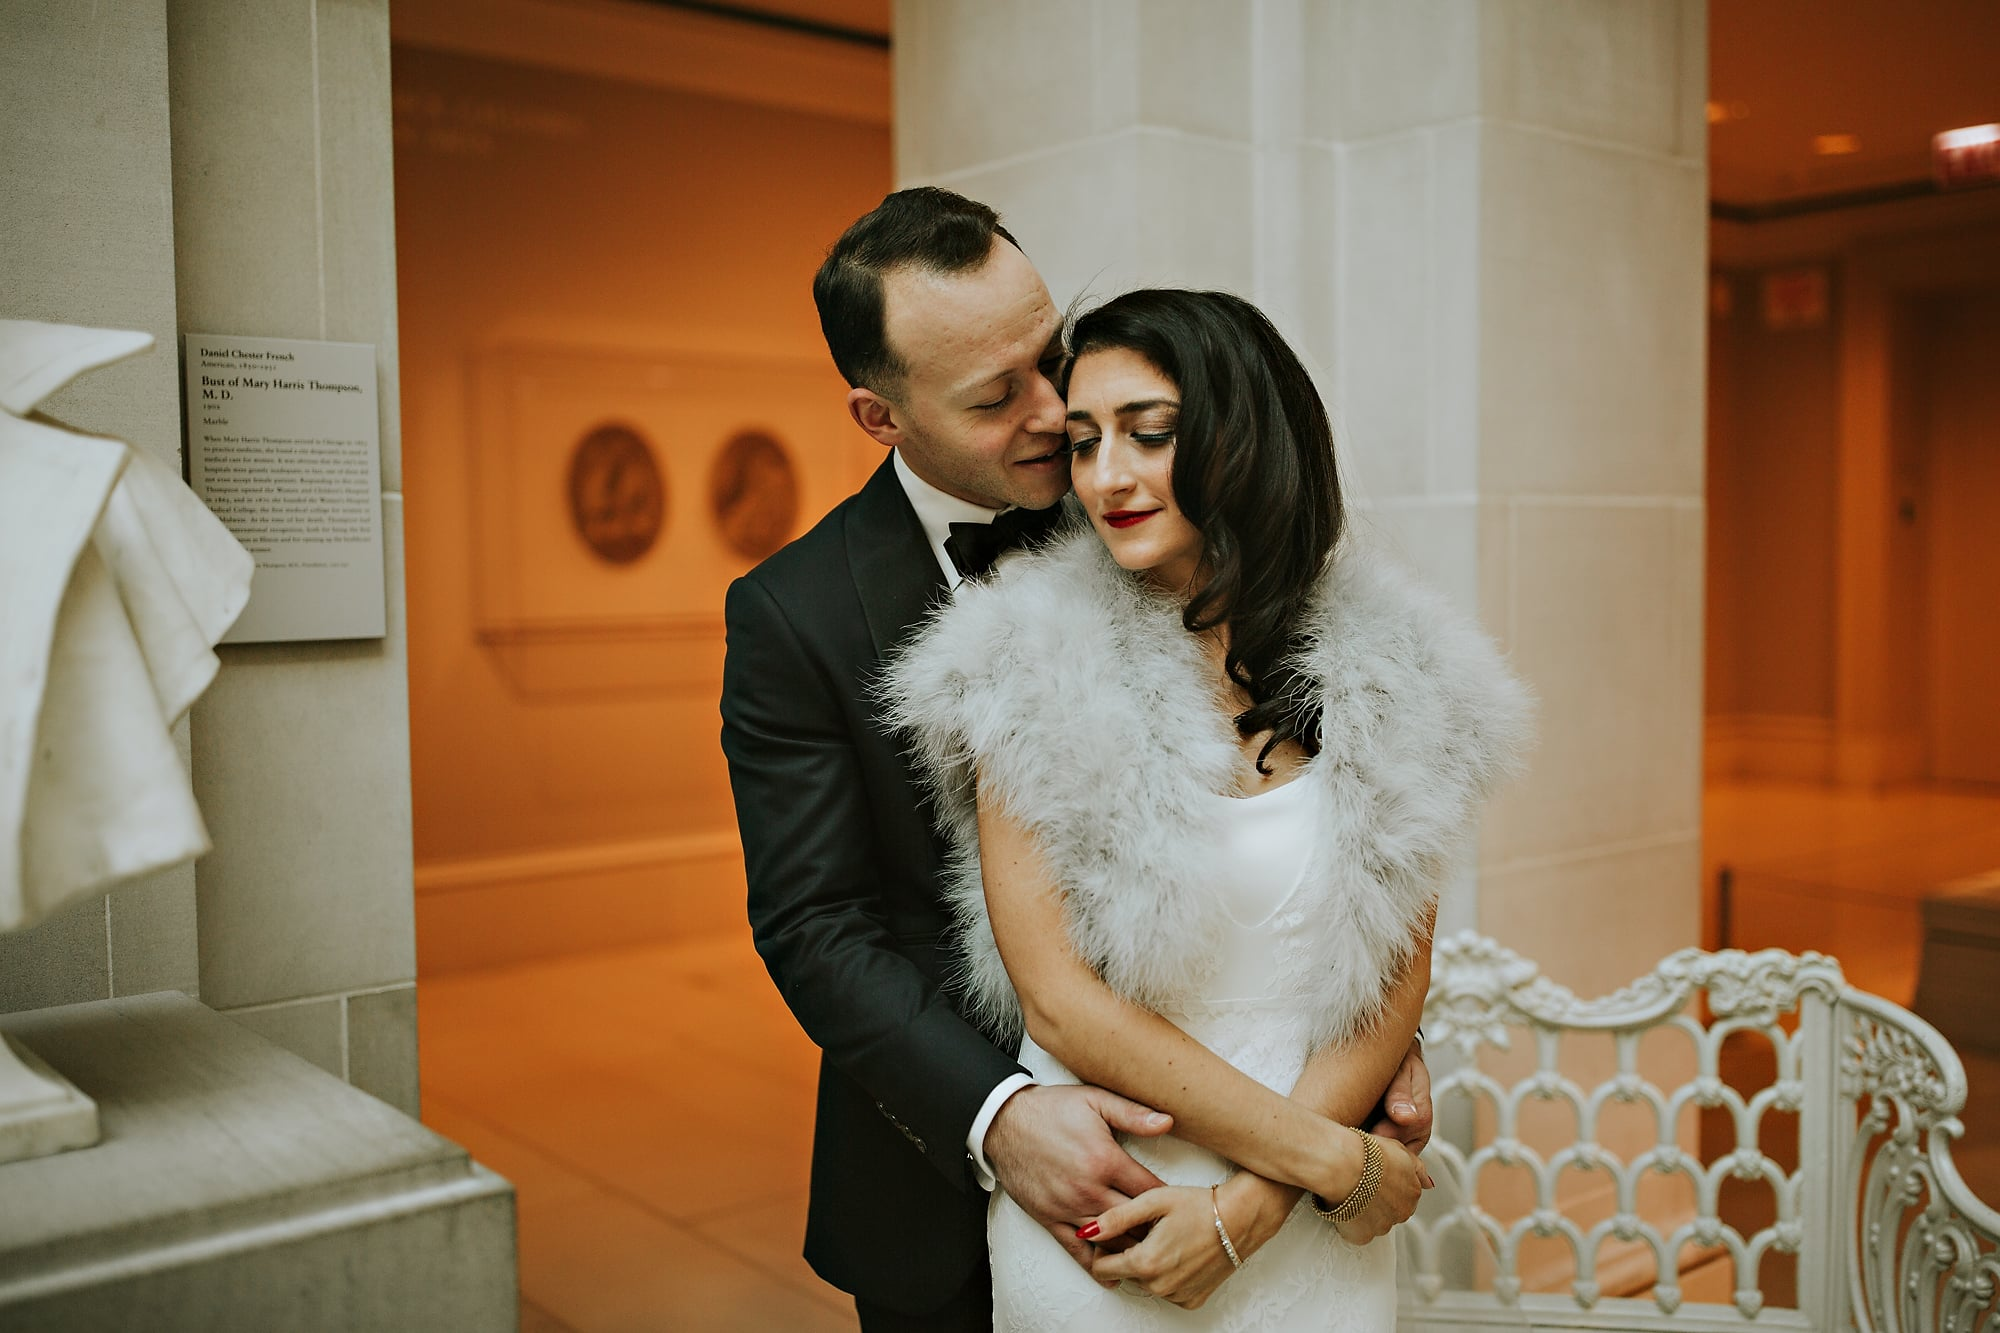 rachel gulotta photography Chicago Wedding-34.jpg